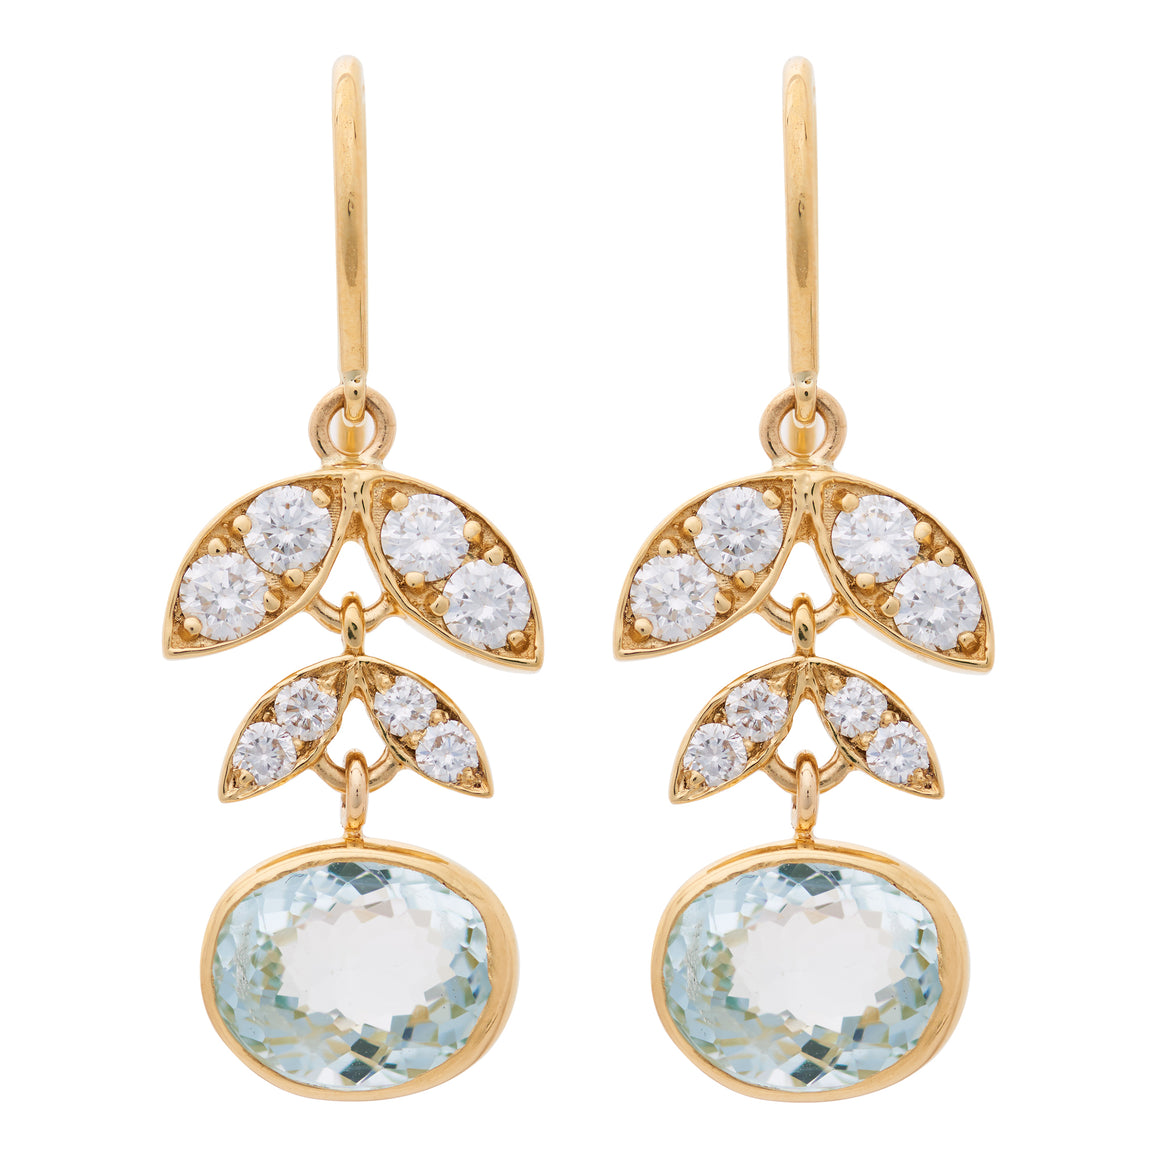 AQUAMARINE LOTUS EARRINGS